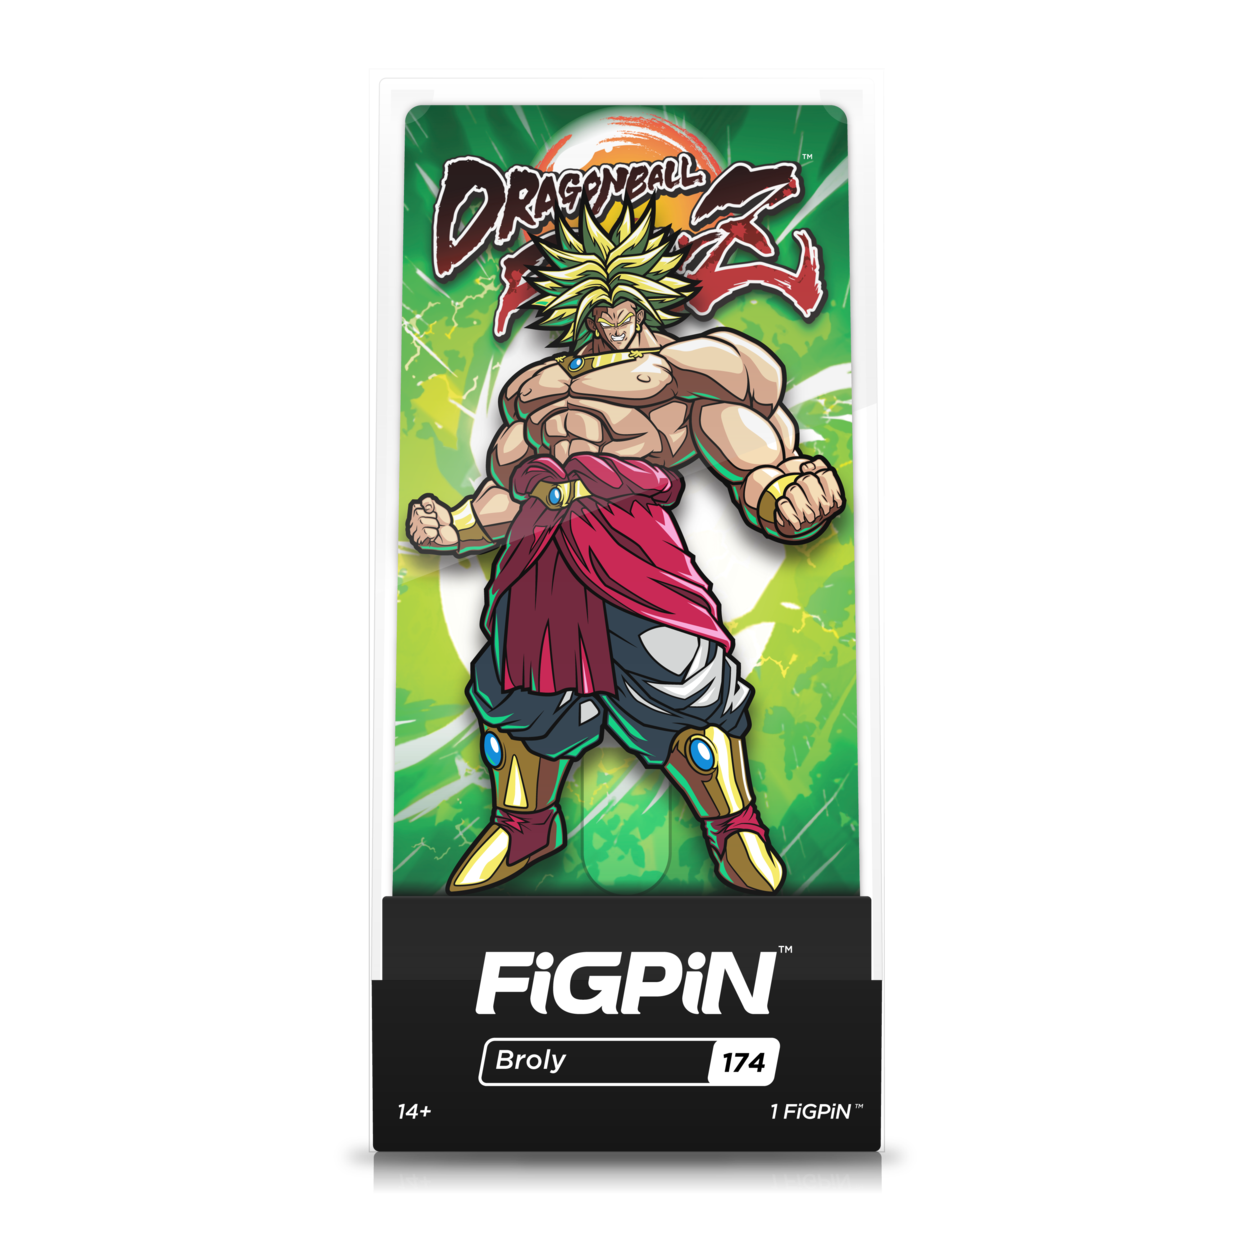 Dragon Ball FighterZ: FiGPiN Enamel Pin Broly [174]